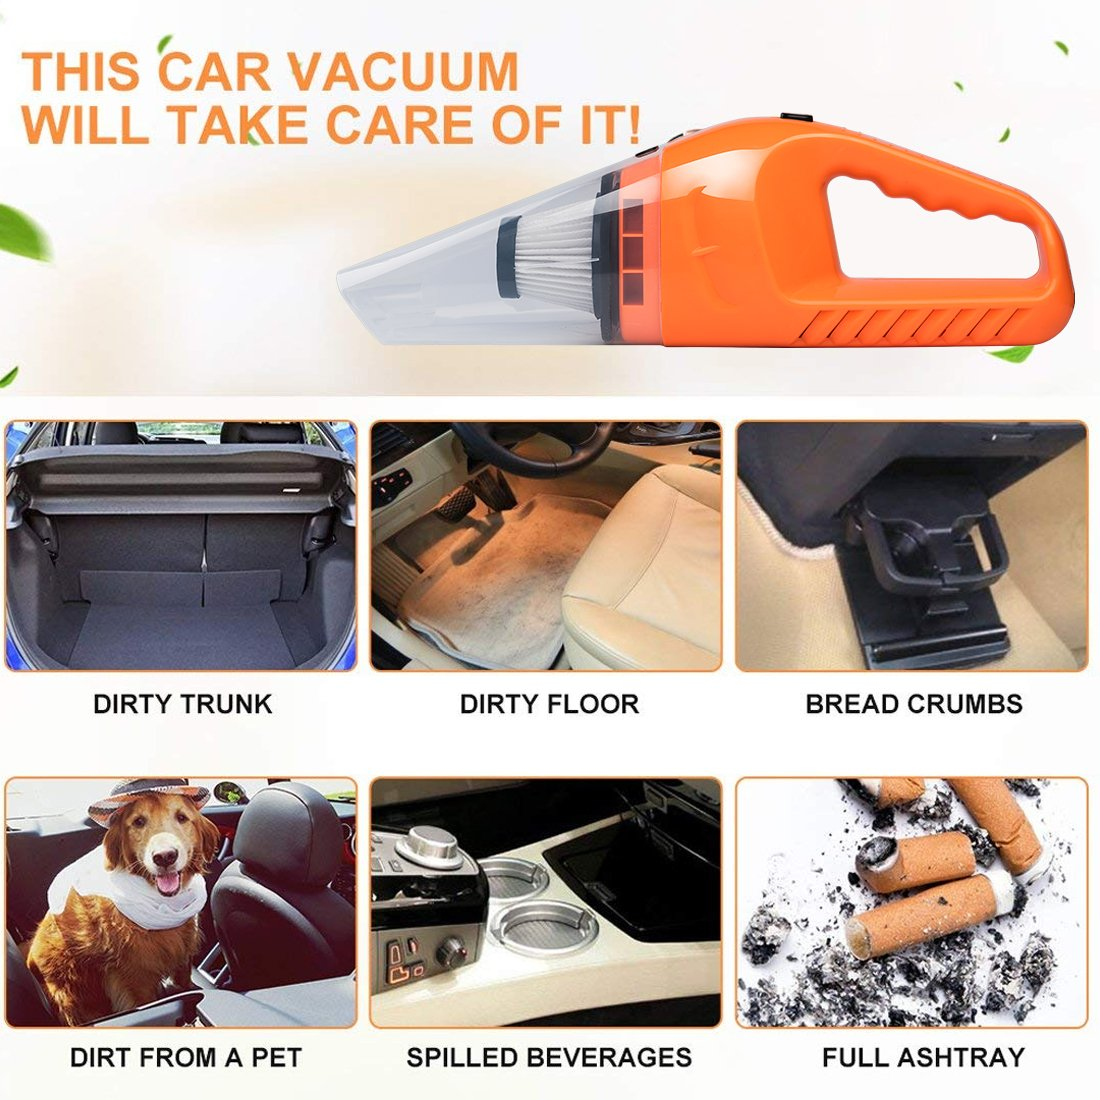 Car Vacuum Cleaner DC 12V Wet Dry Auto Dustbuster Portable Handheld Auto Vacuum Cleaner for Car 4000Pa Suction 120W Car Hoover with HEAP Filter & 5 Meters/16.4 FT Power Cord(1 Yr Warranty) Orange by candyfouse (Image #4)